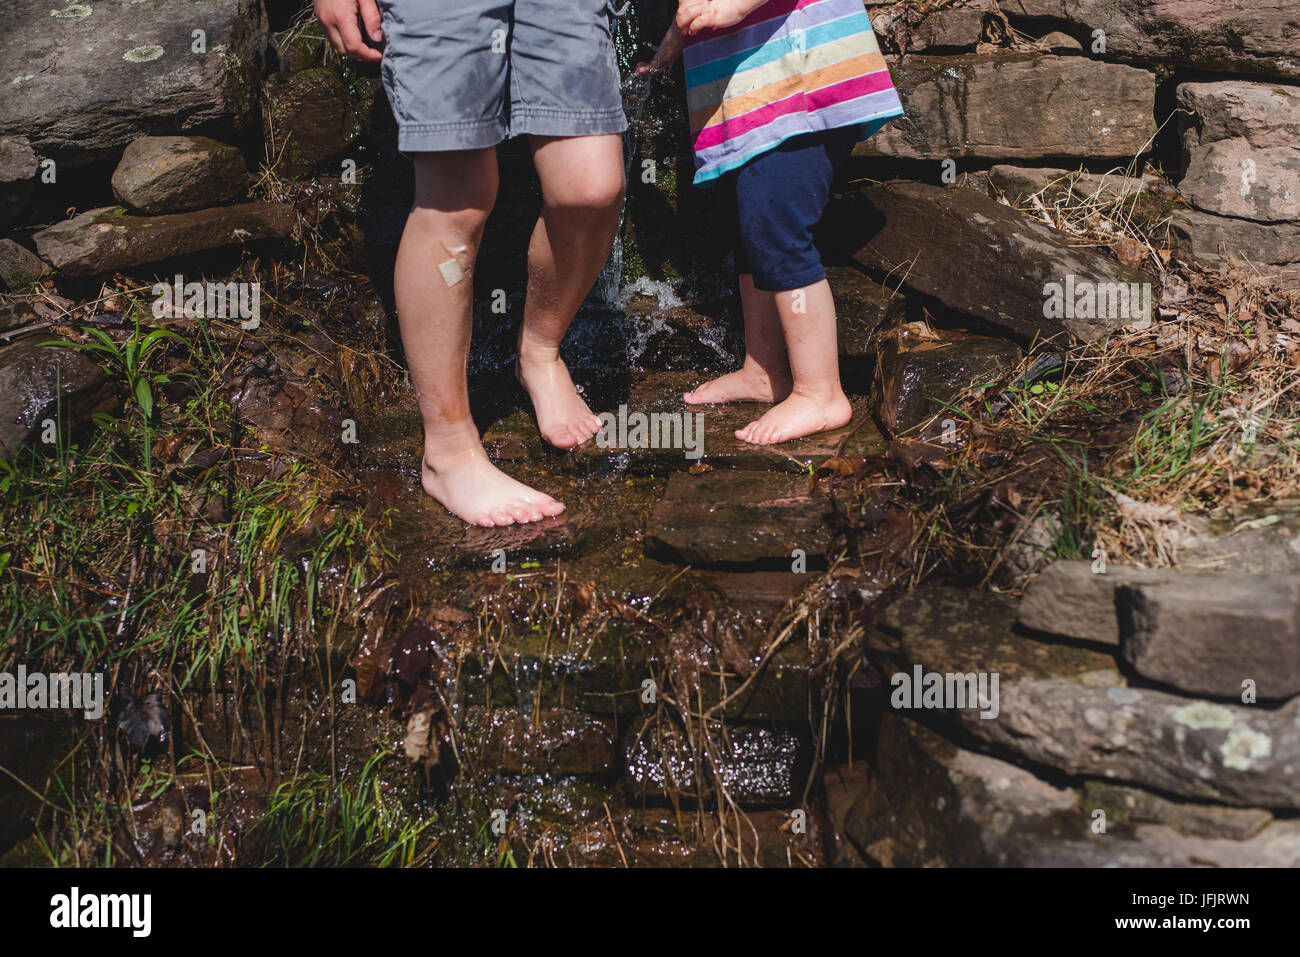 Children play barefoot in a rural area - Stock Image